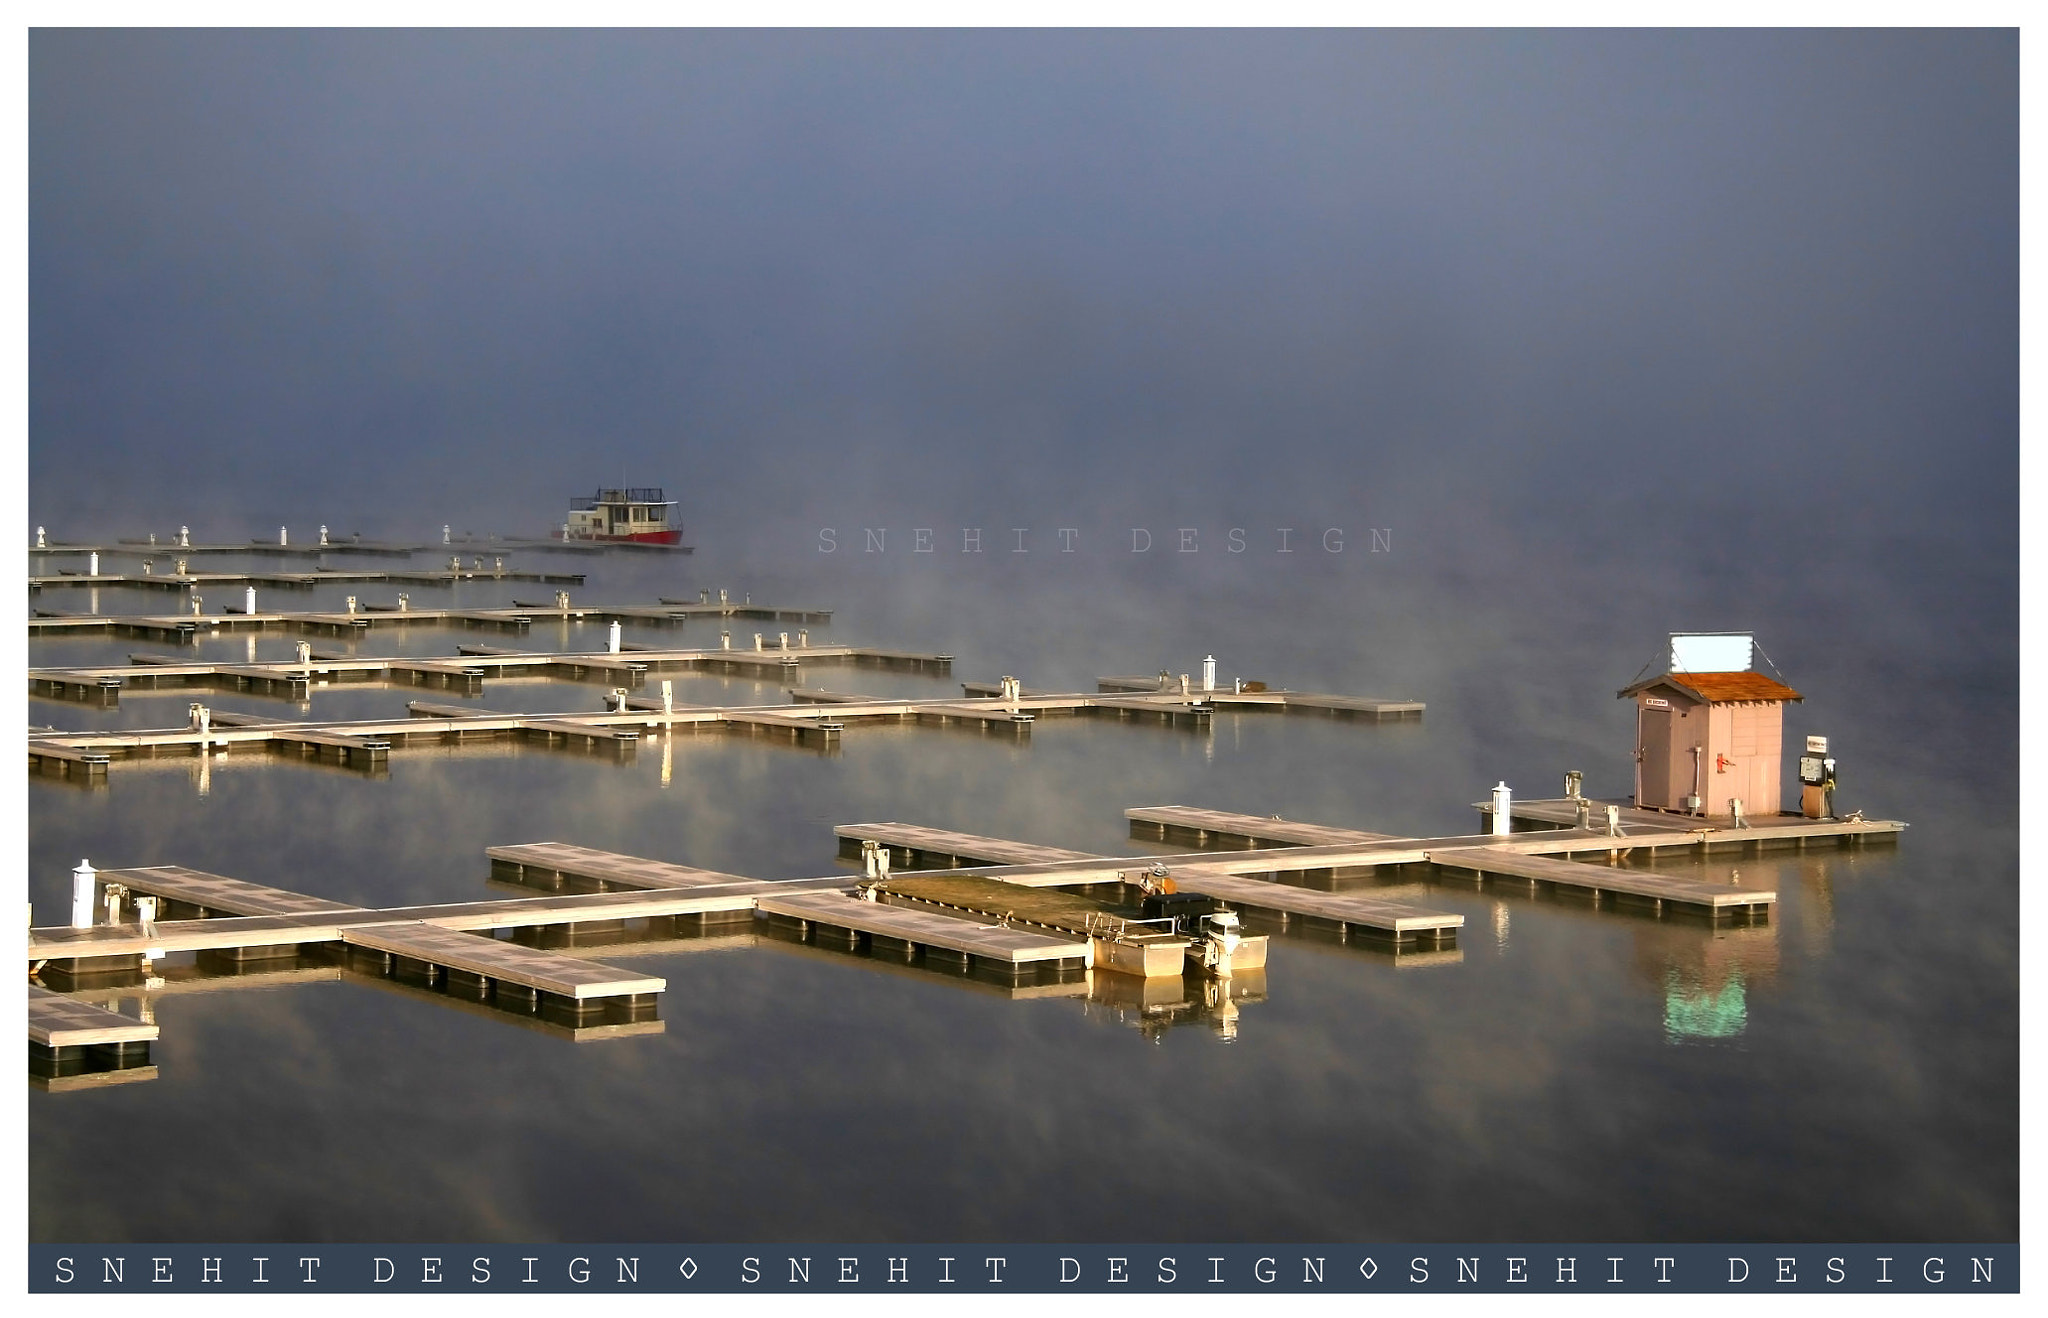 Photograph Boating dock in the mist by S N E H I T  on 500px